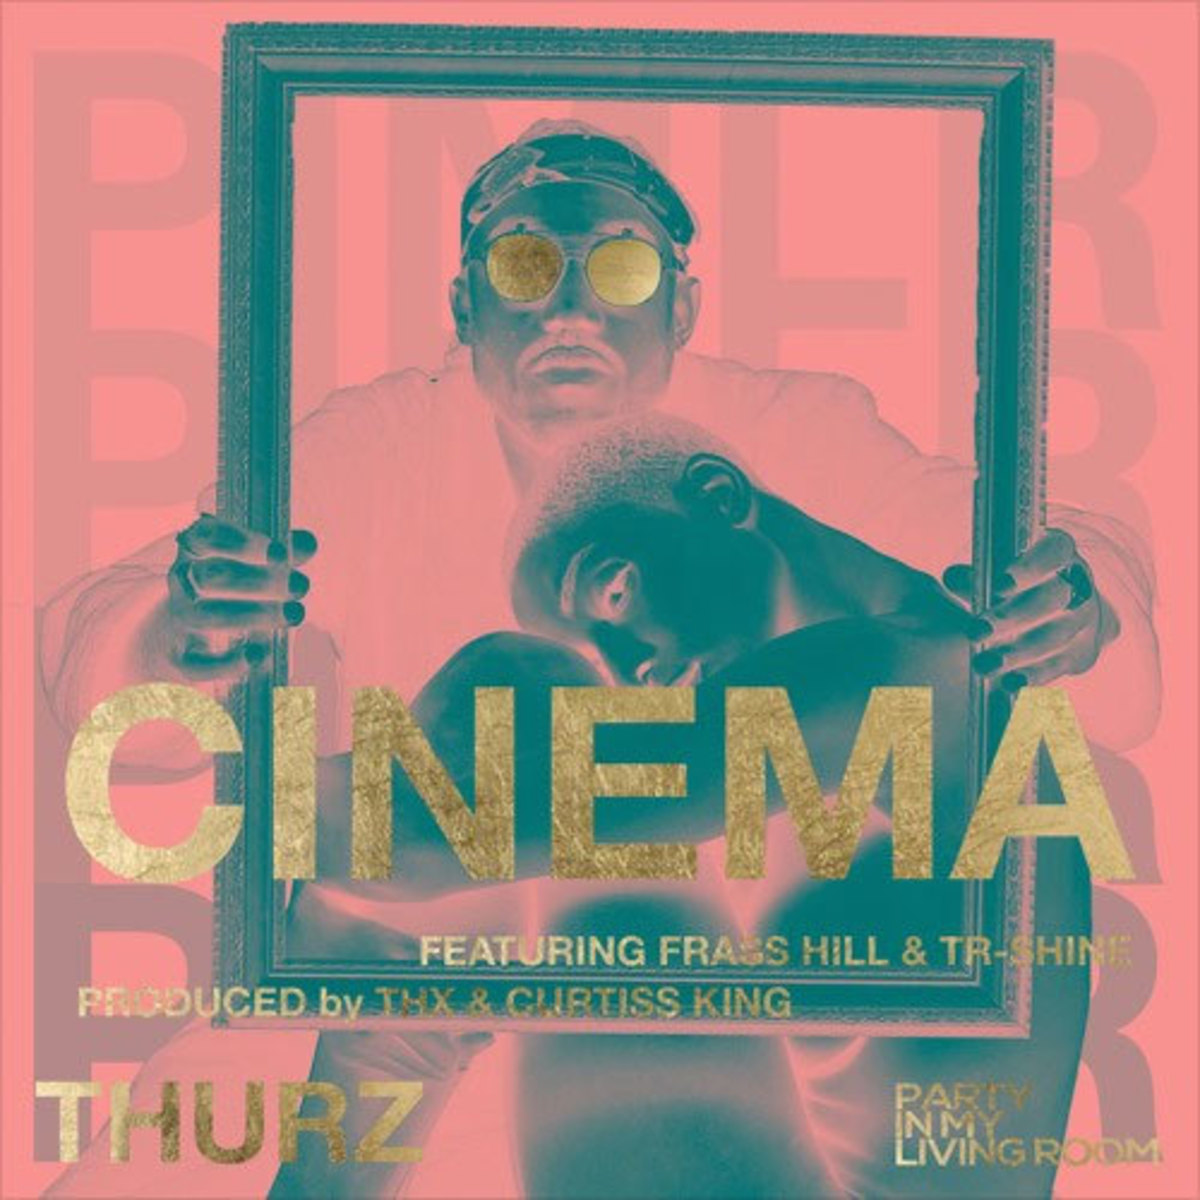 thurz-cinema.jpg